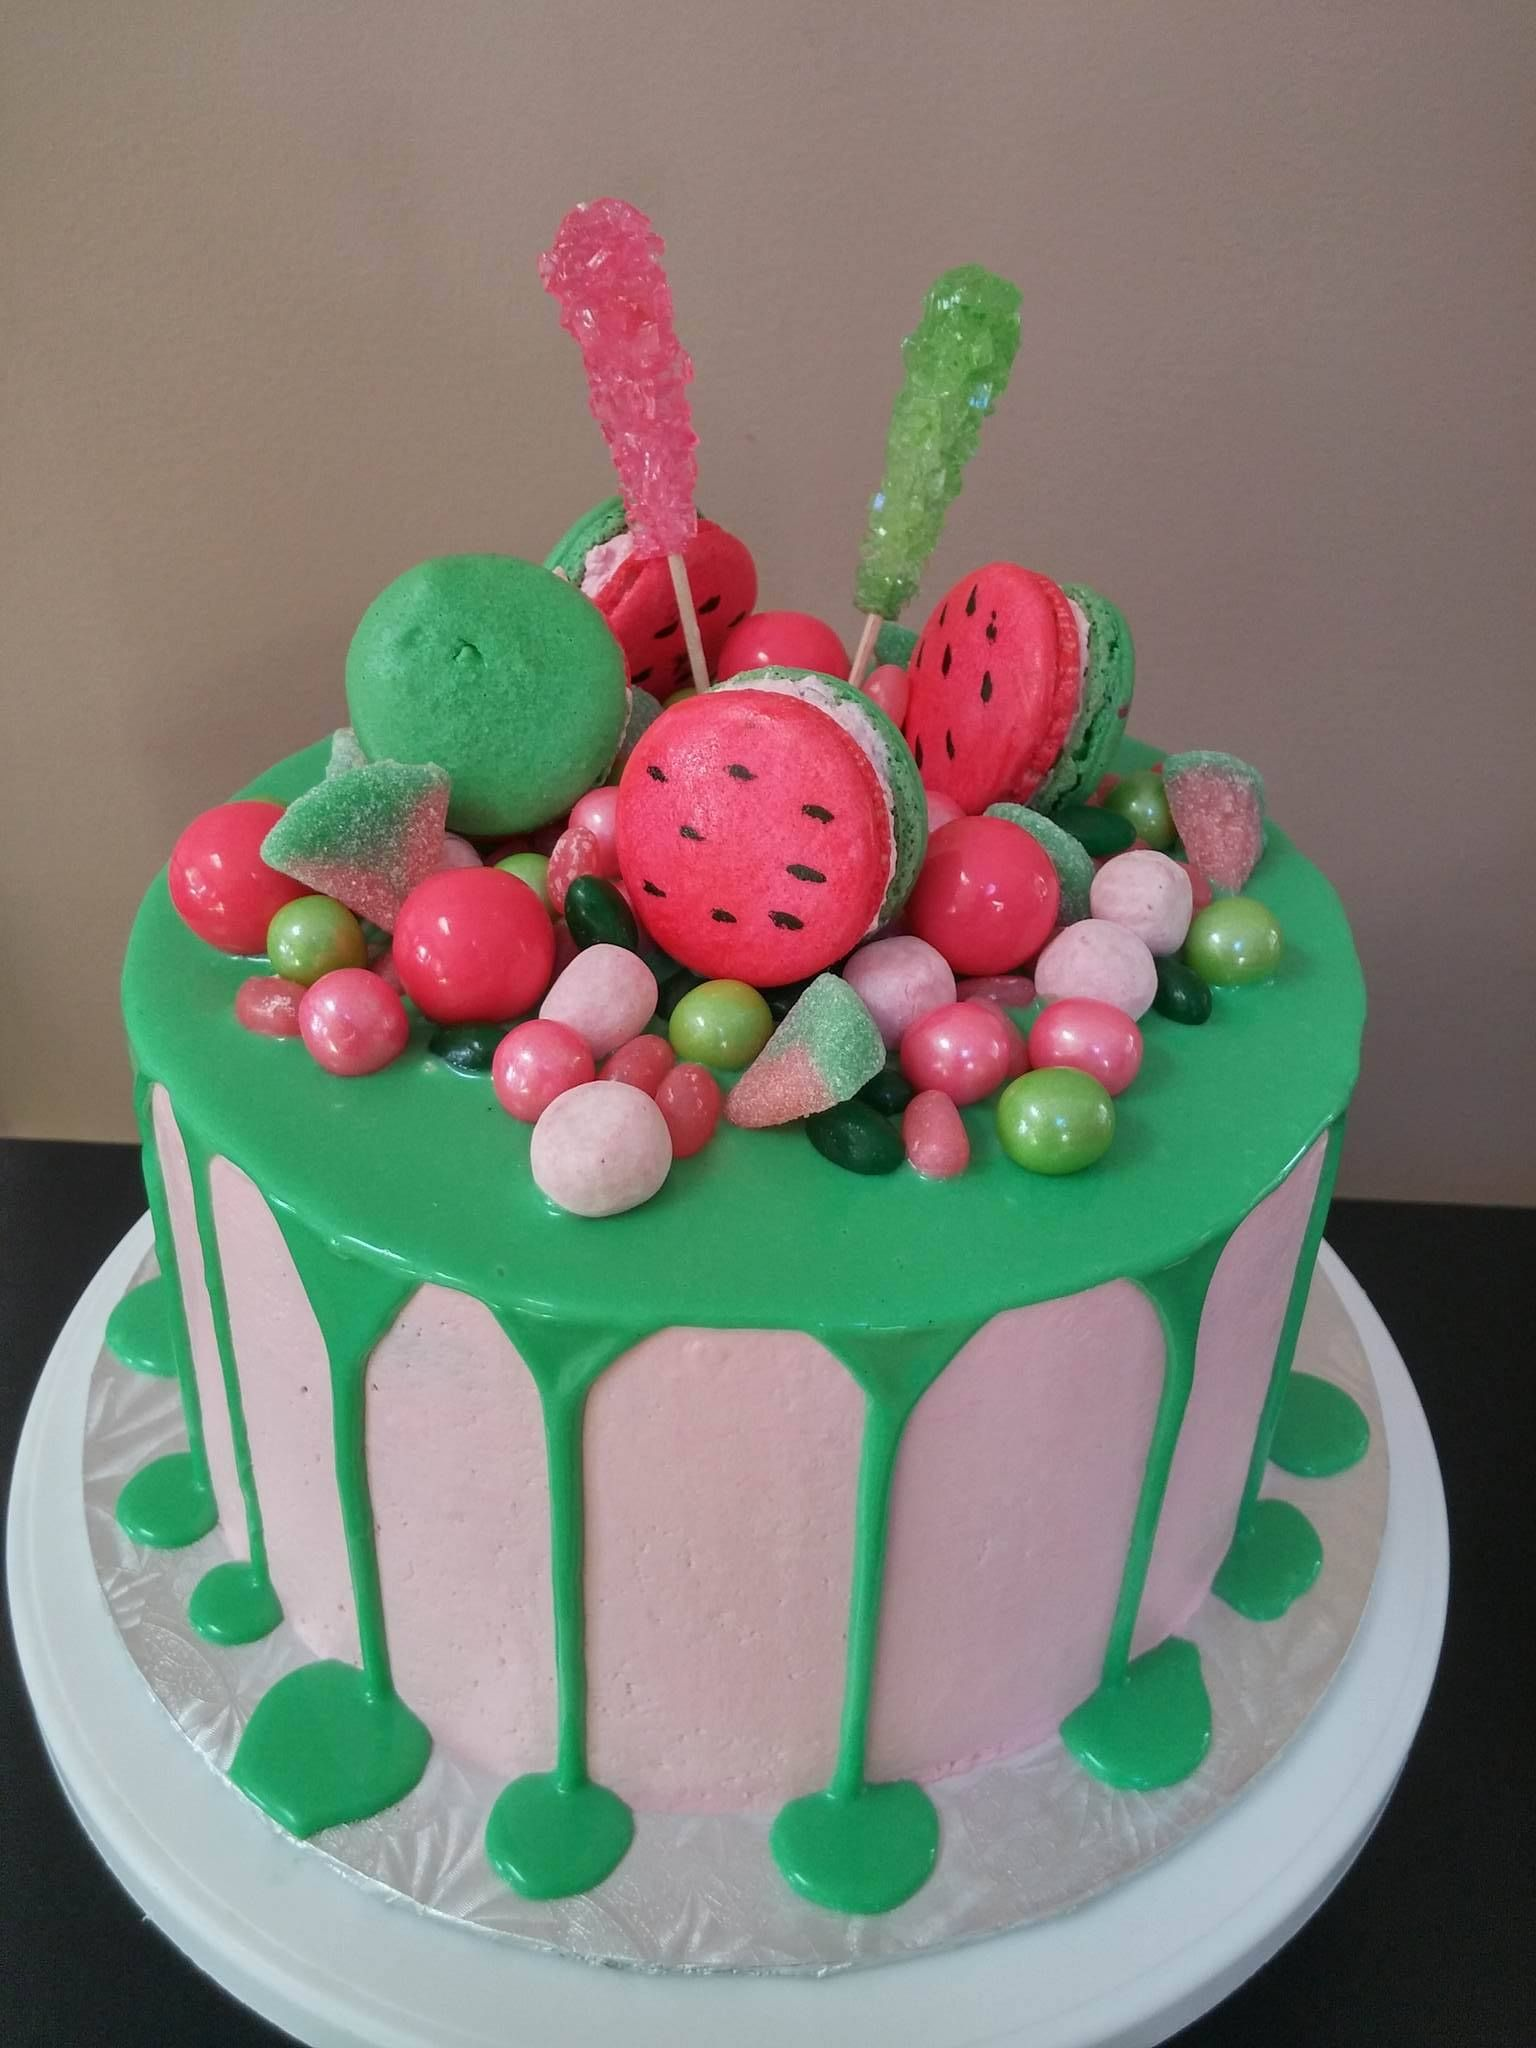 Watermelon Themed Drip Cake!